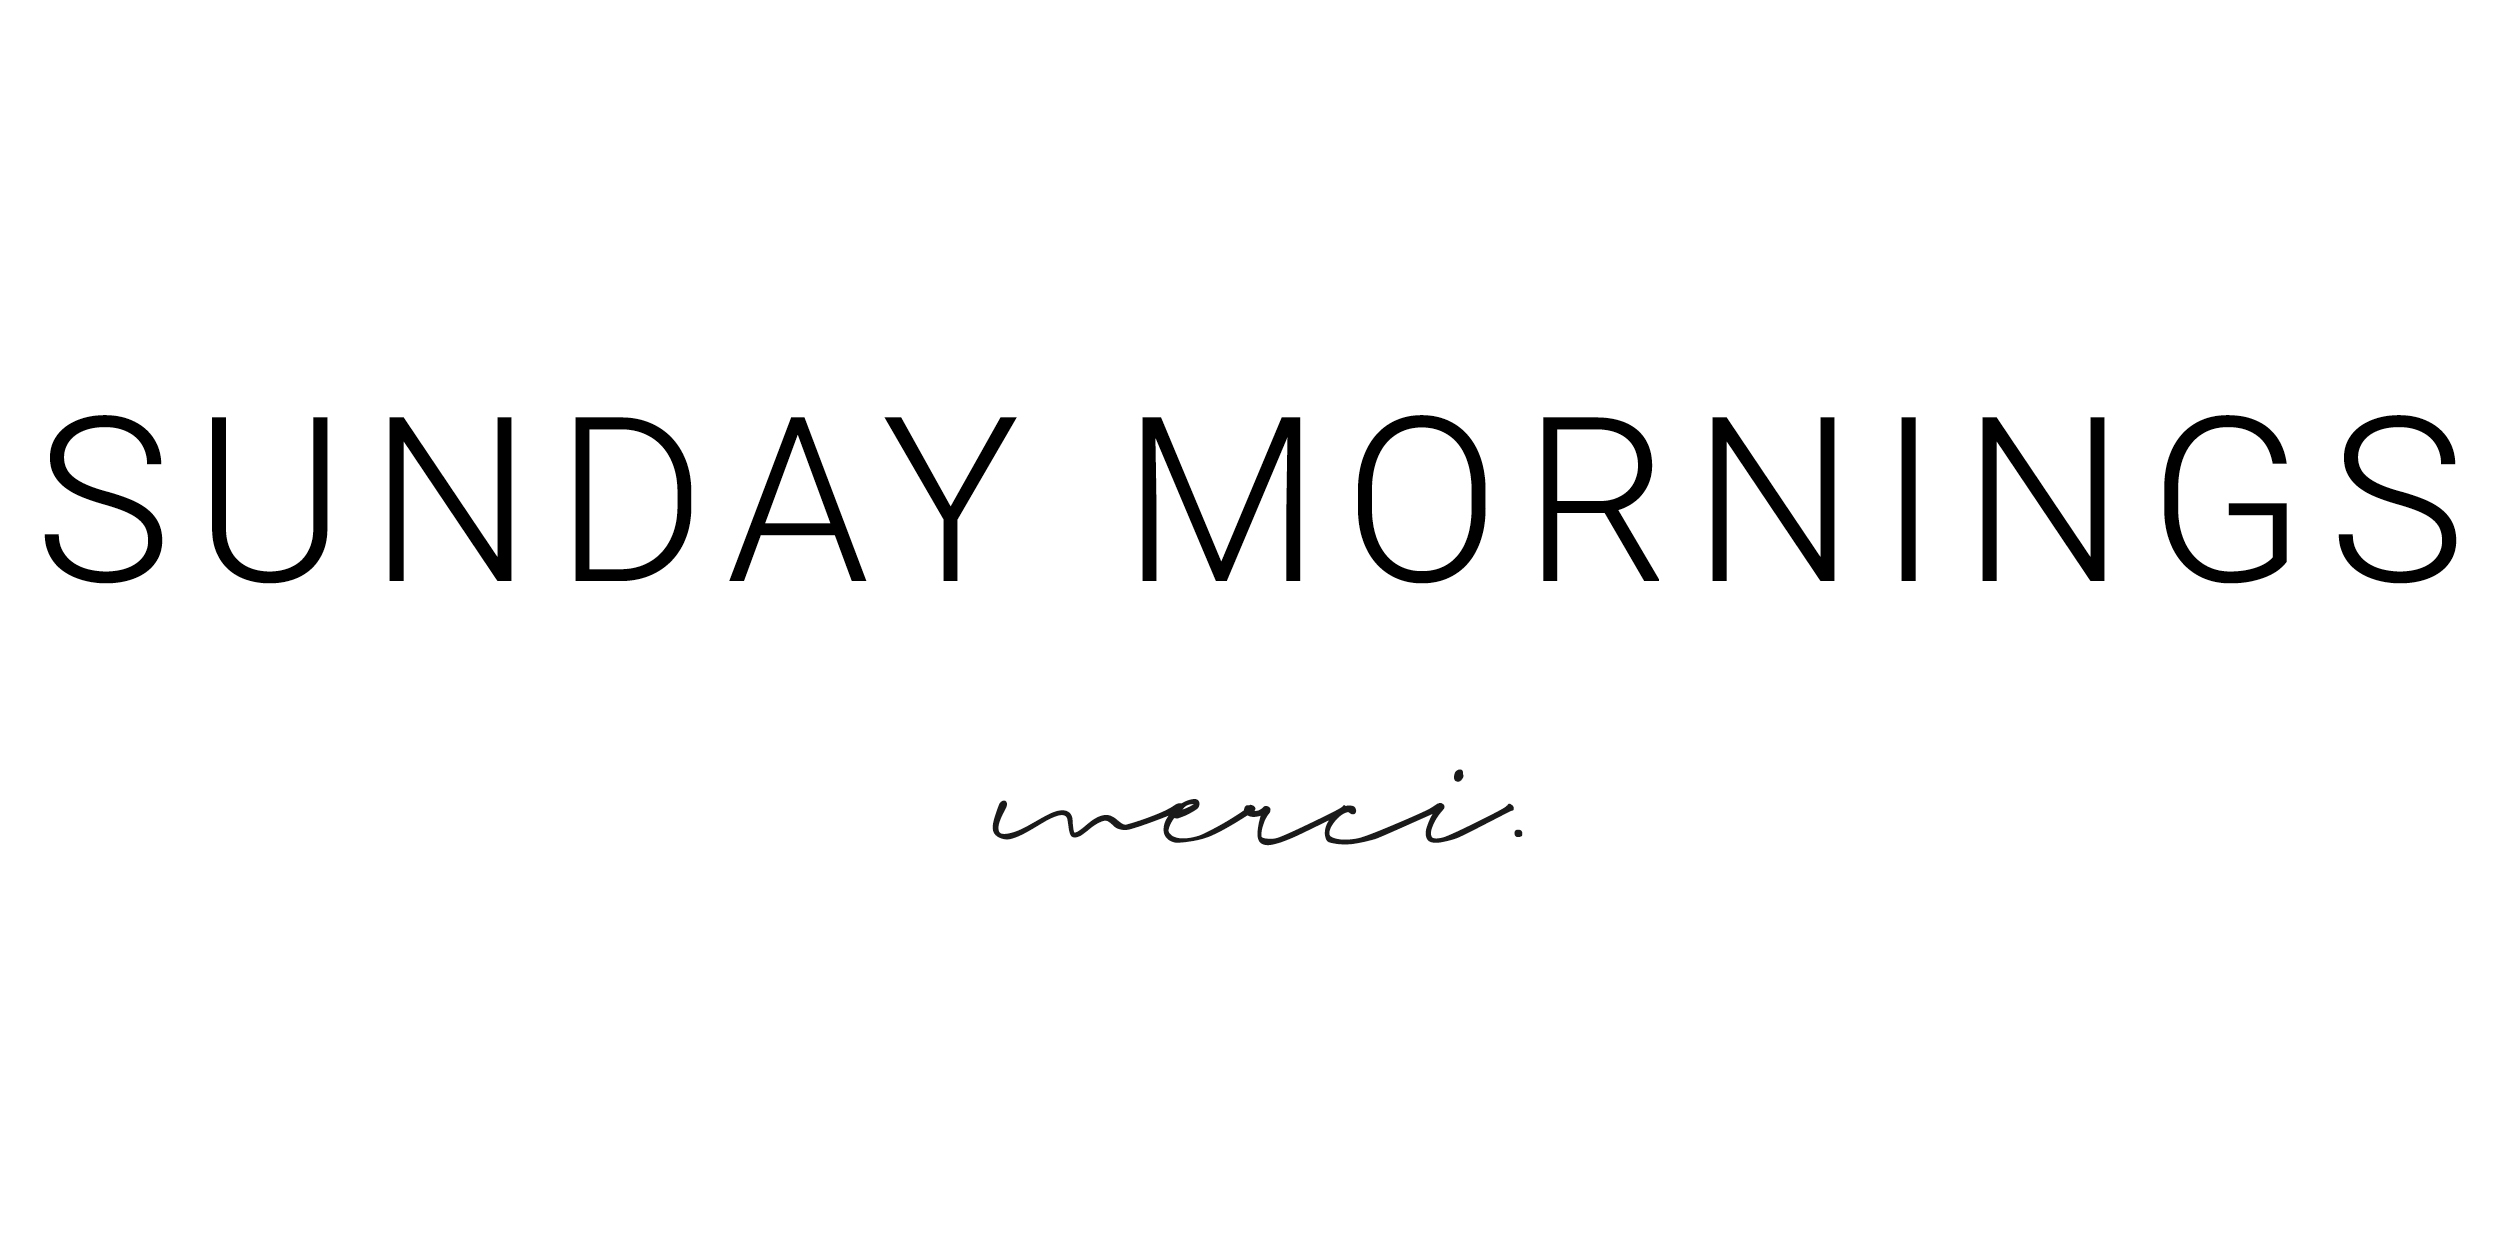 SUNDAY MORNINGS | MALAYSIA ONLINE FASHION STORE